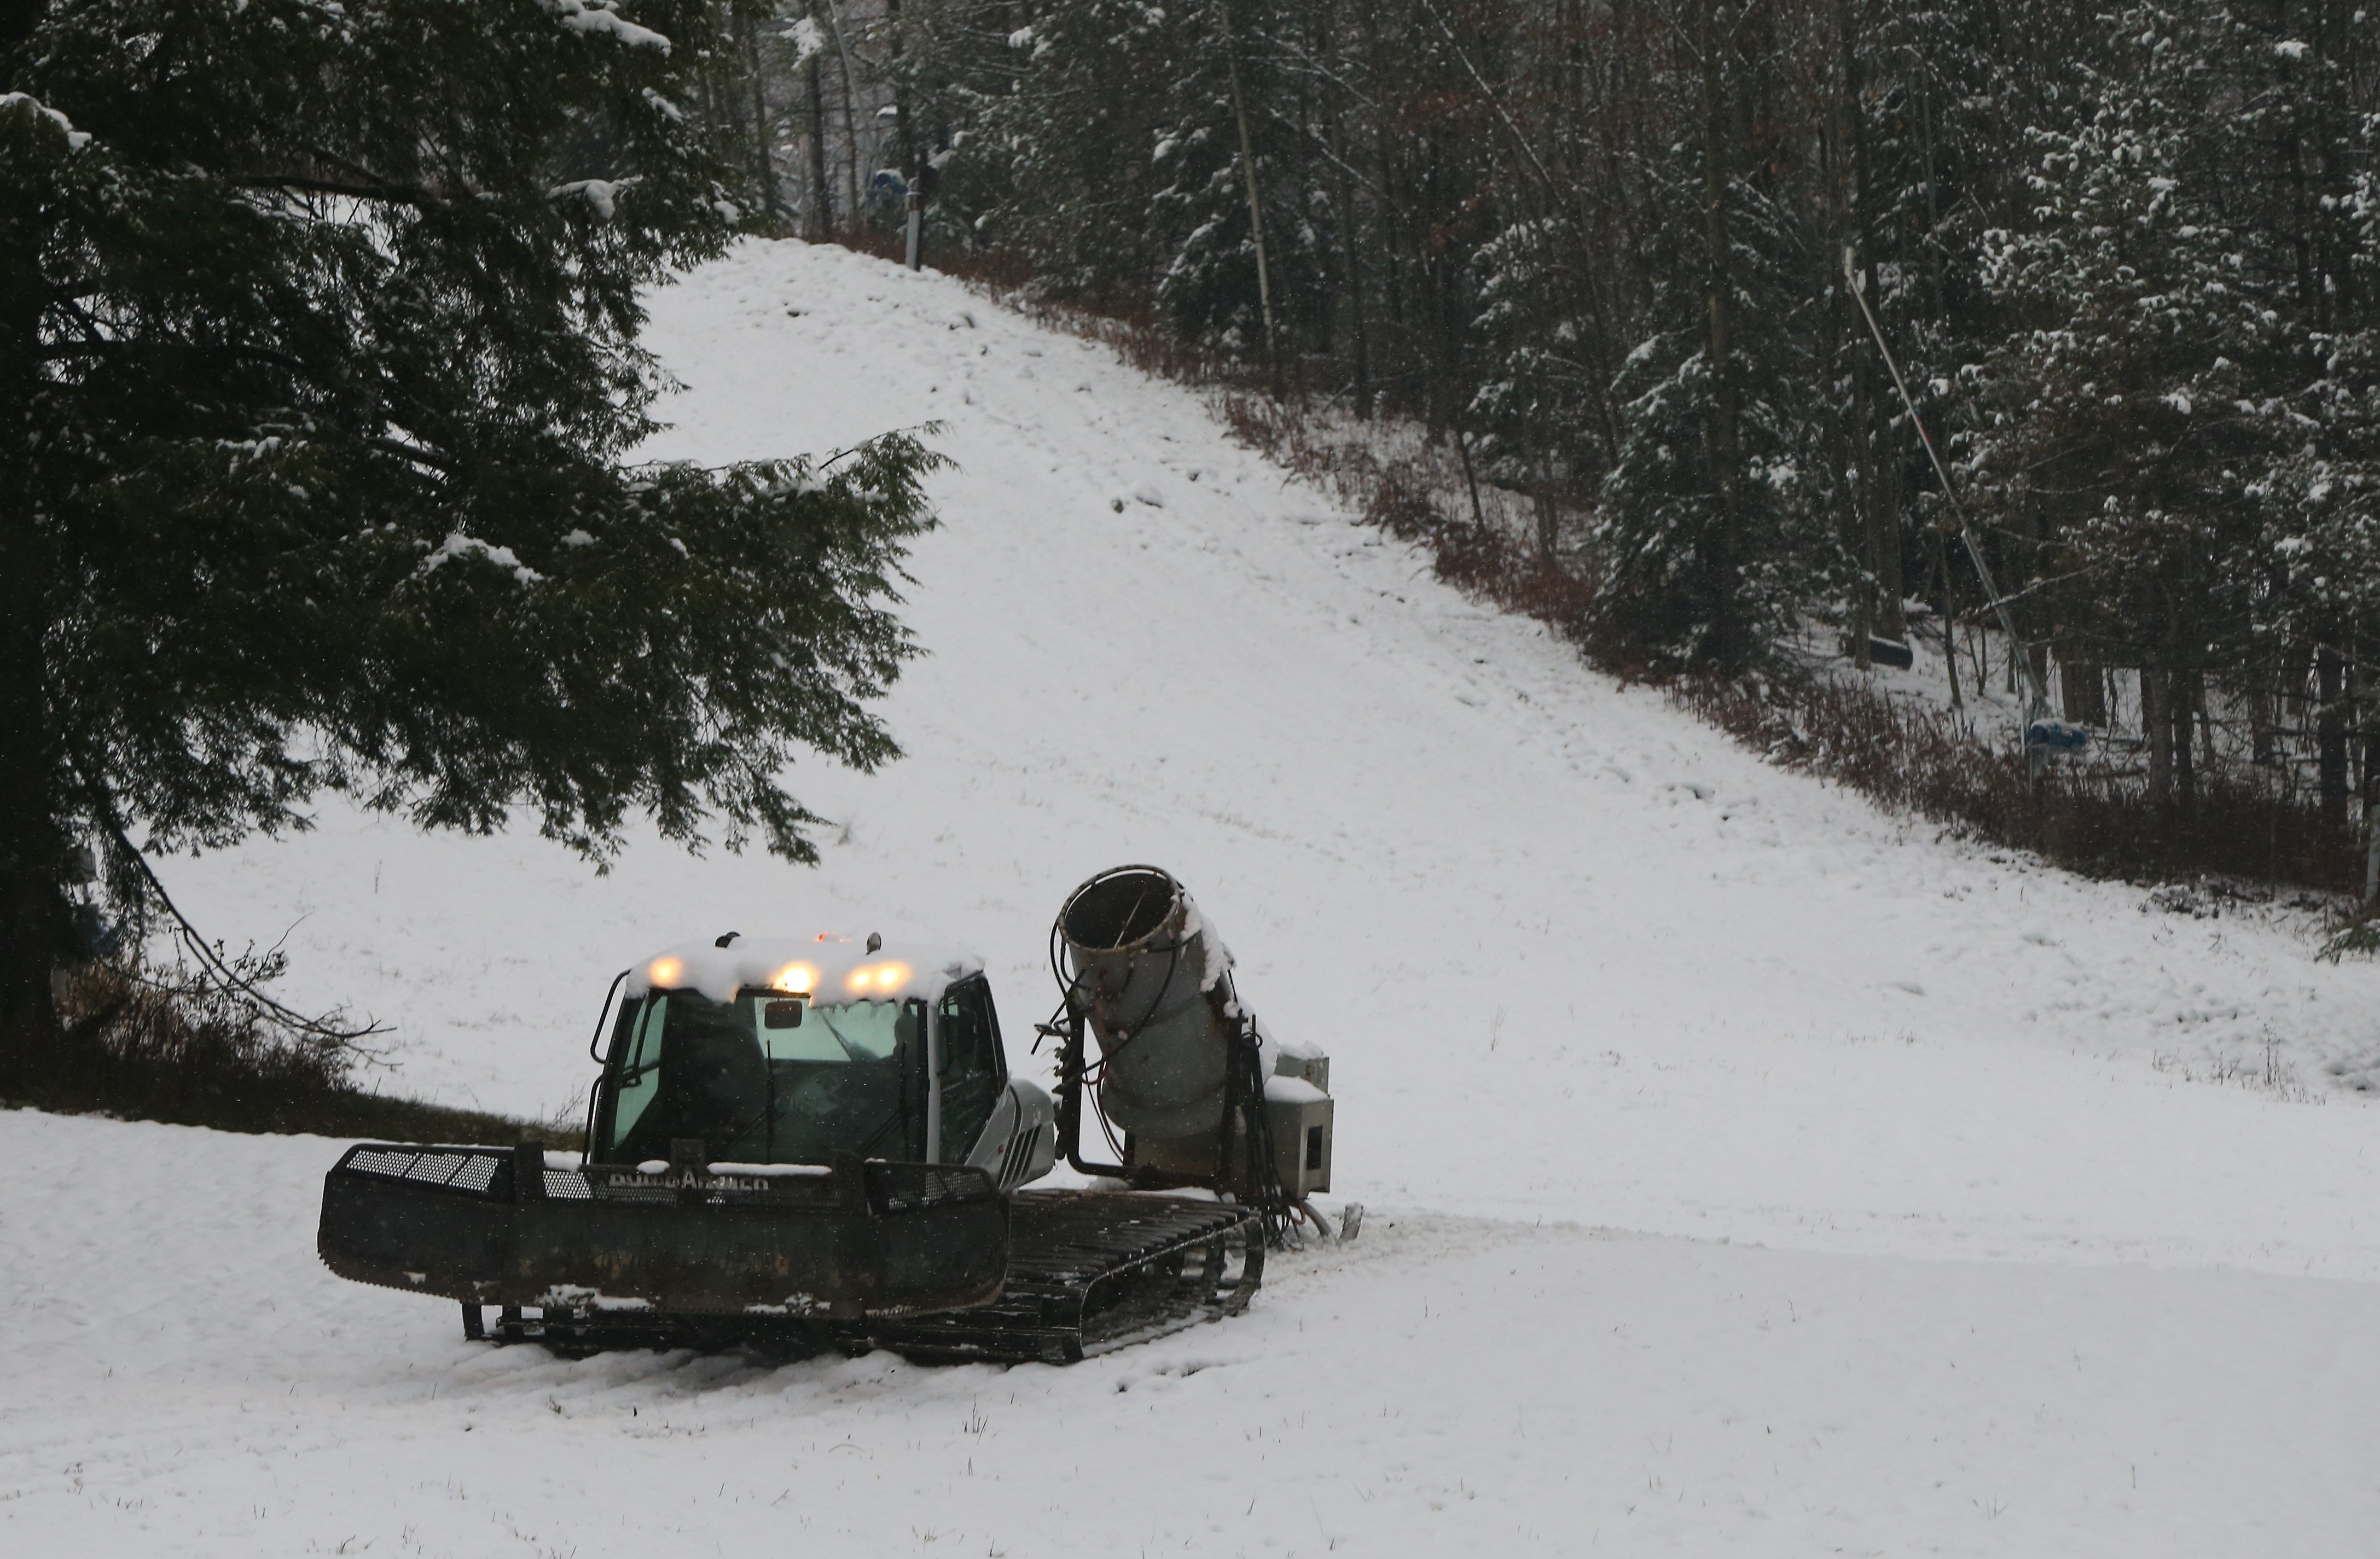 In a photo taken Monday before the snowstorm, crews at Kissing Bridge in Glenwood move snow-making equipment into place. A spokeswoman said that despite getting 12 inches of snow so far this week, the resort still plans to open for the season Nov. 28.